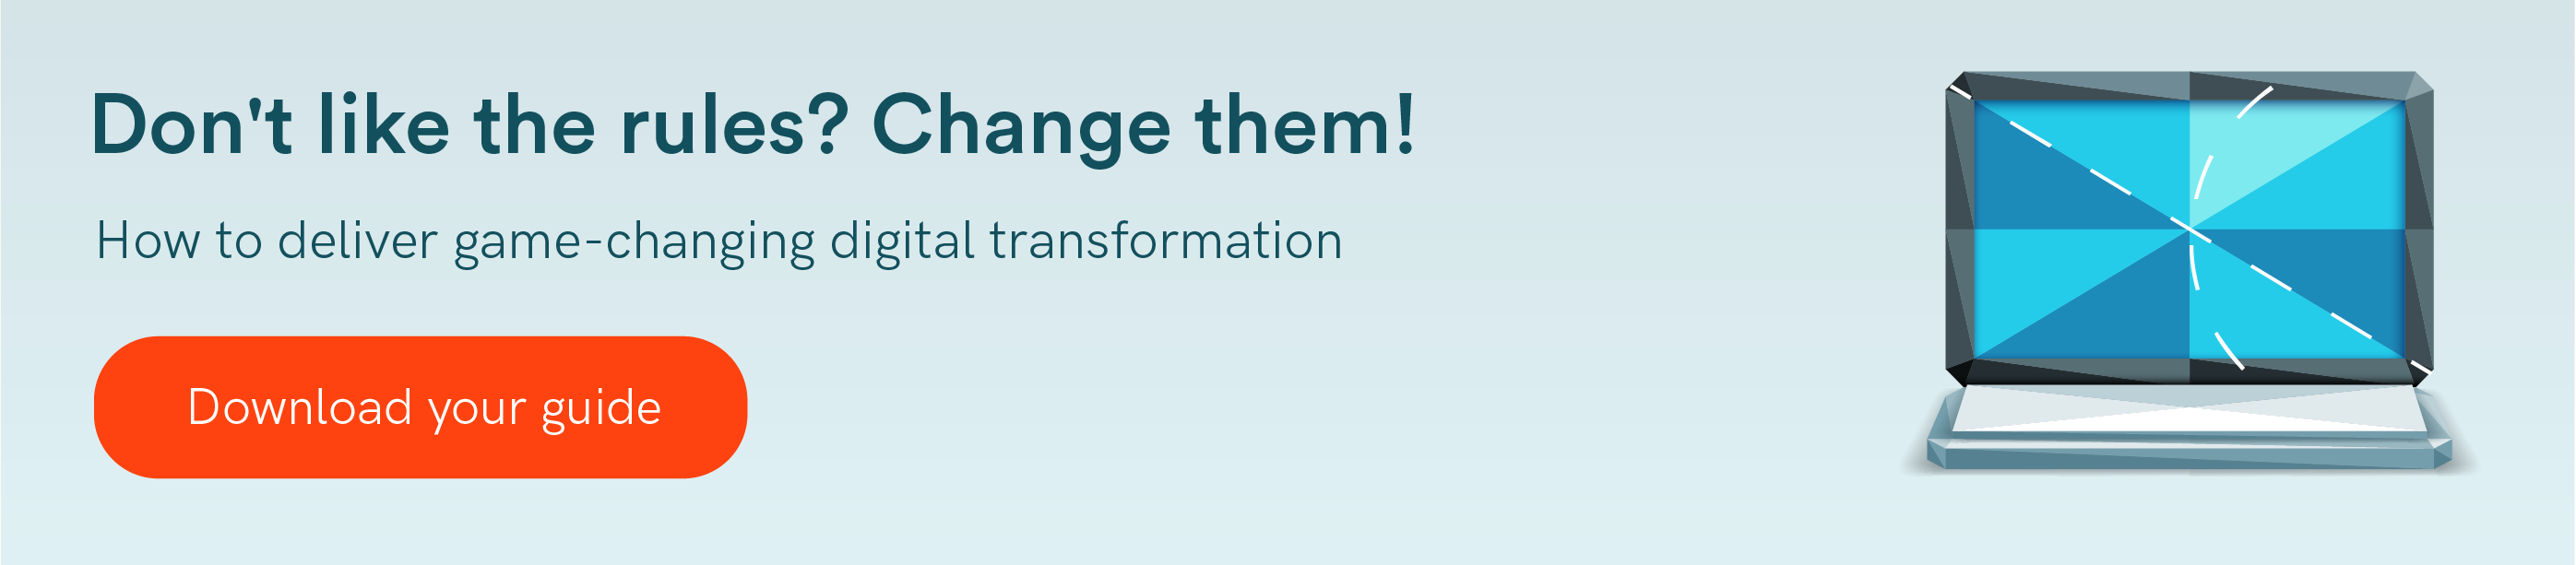 Don't like the rules? Change them! How to deliver game-changing digital transformation - download your guide